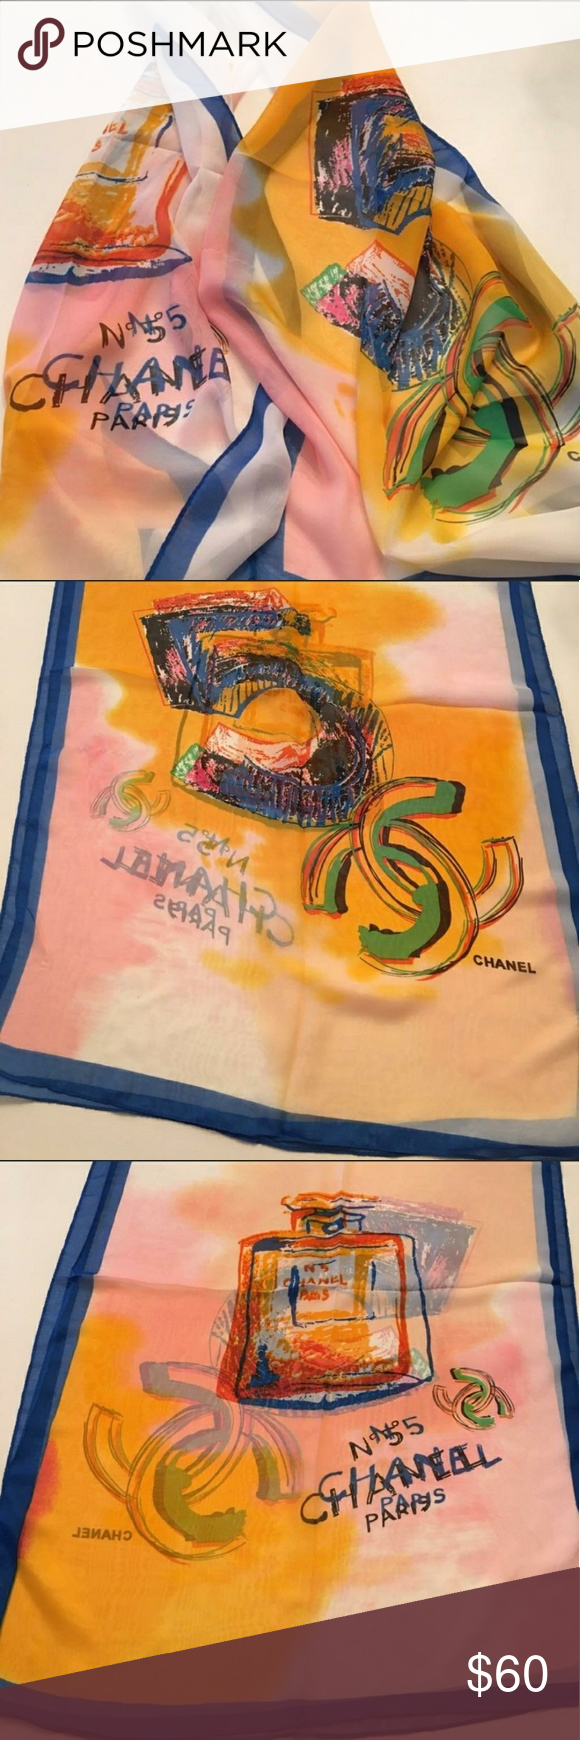 CHANEL N 5 Scarf New Authentic Gift With Purchase of